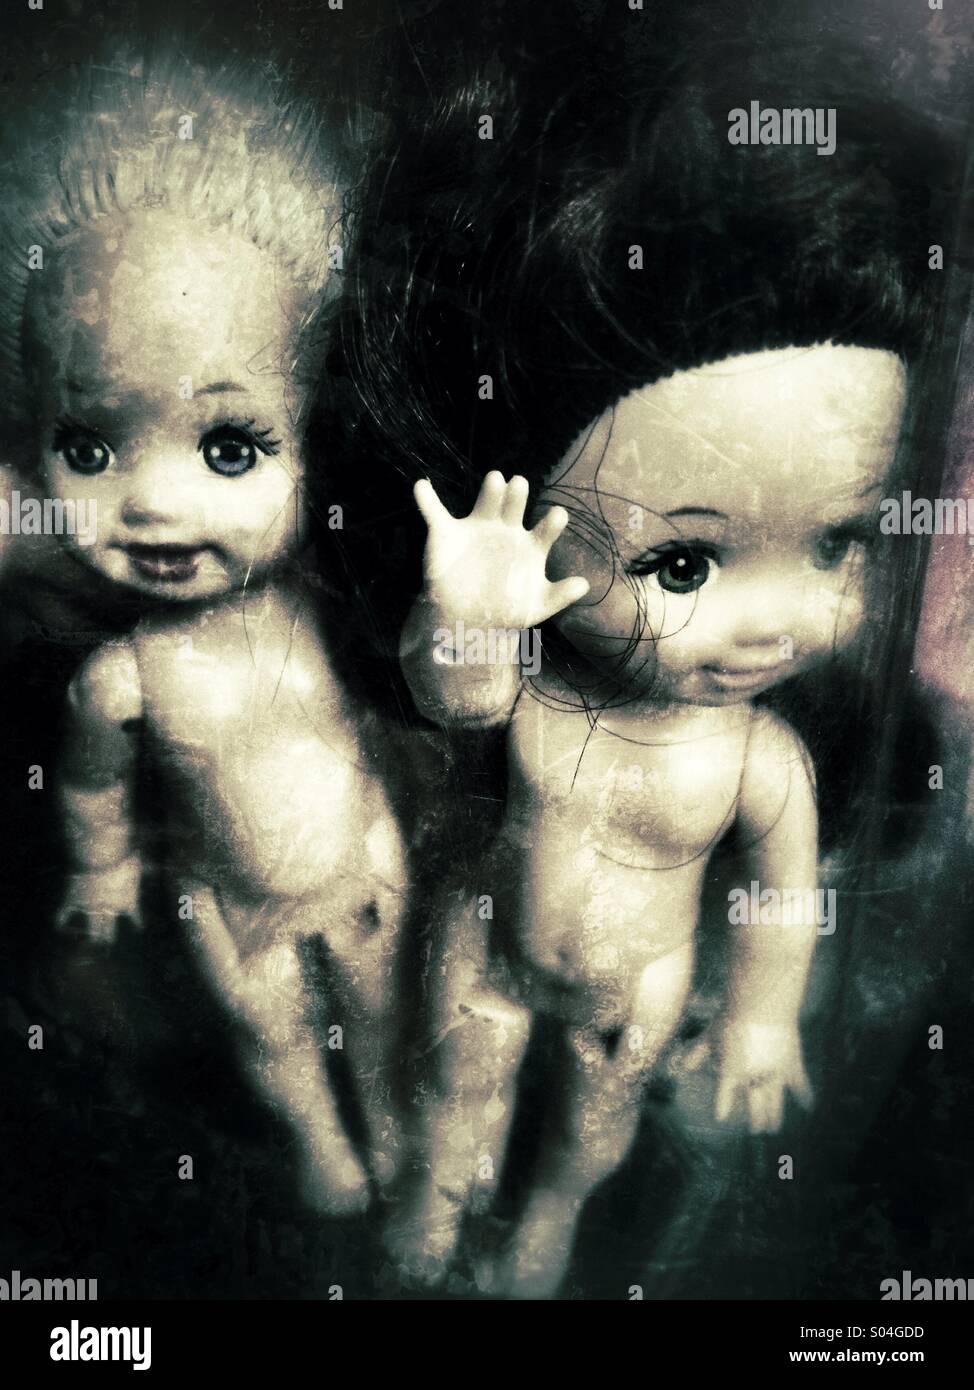 Petites Poupées creepy Photo Stock